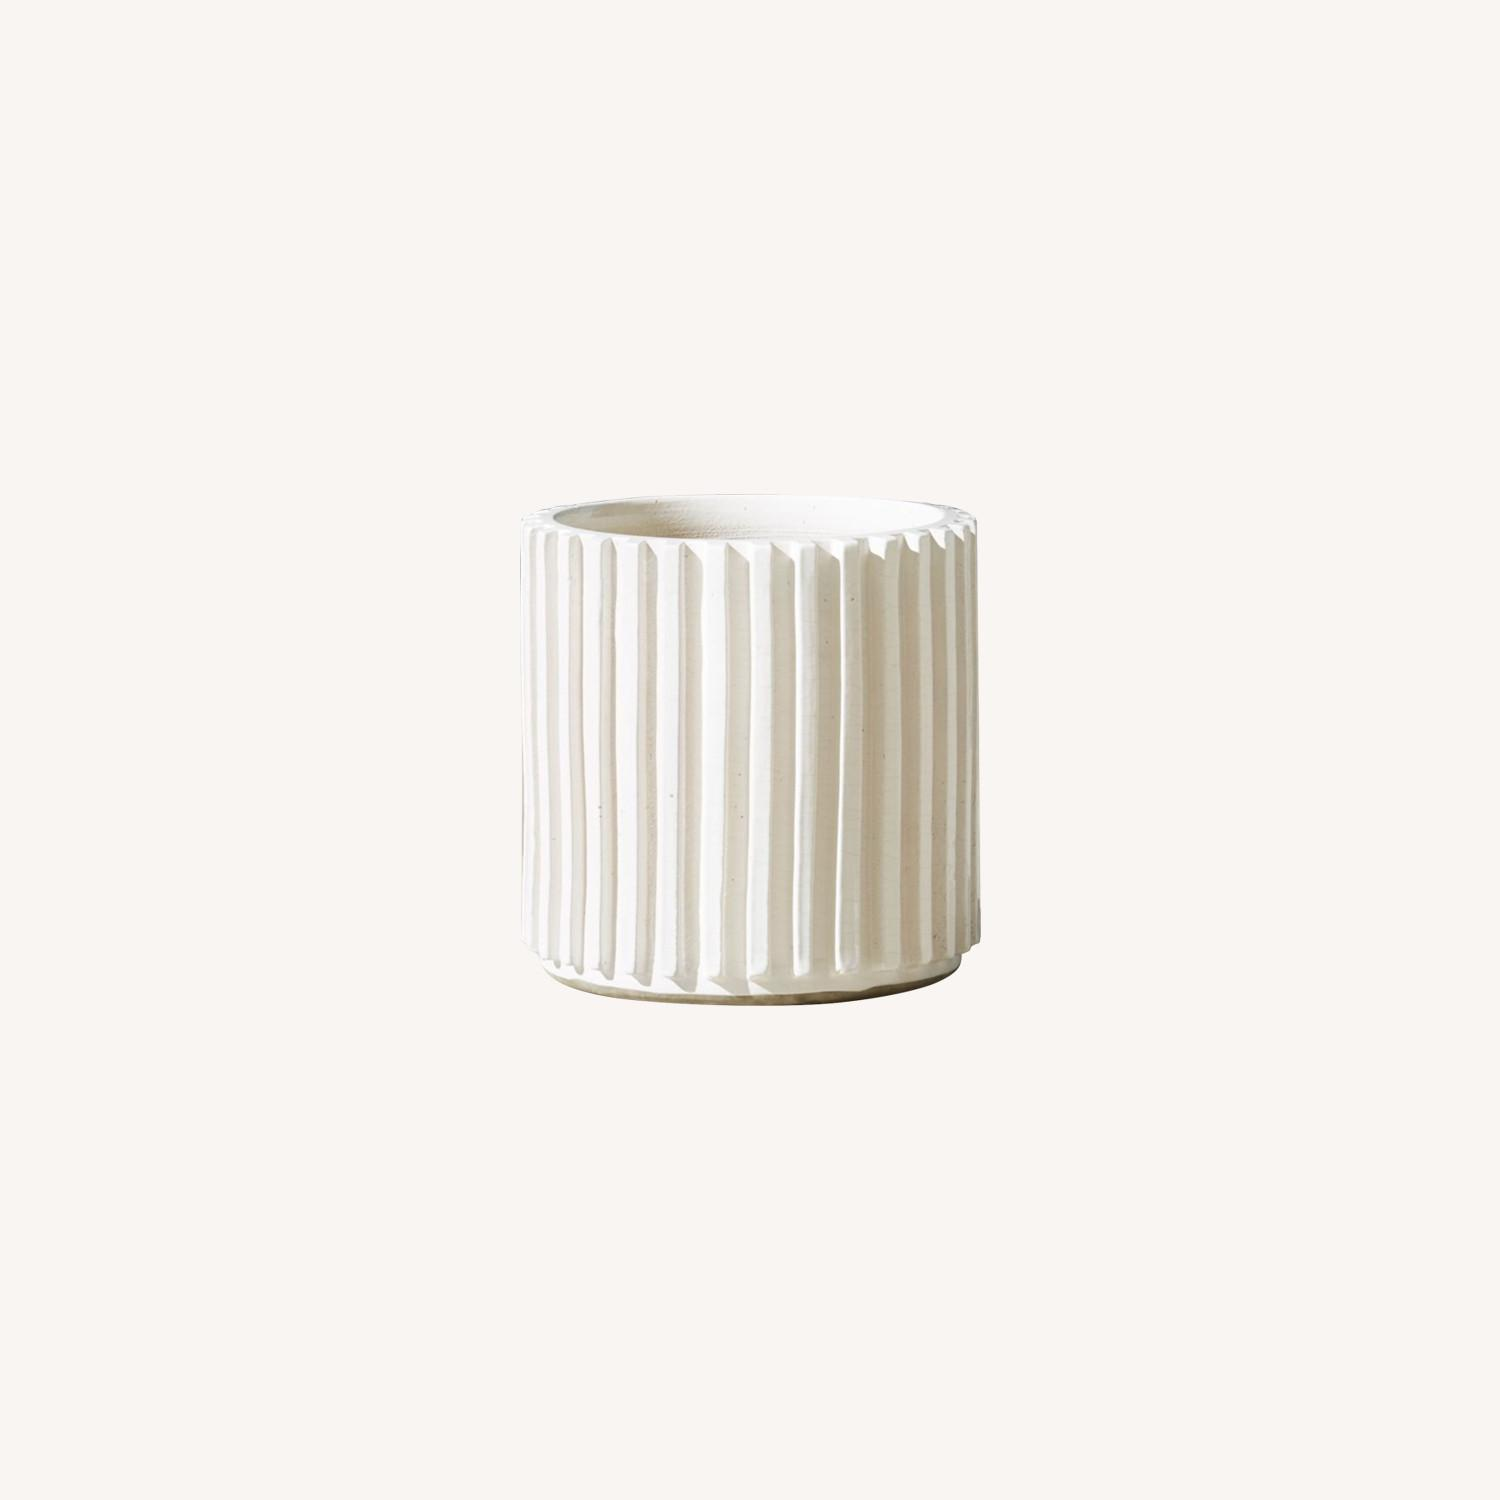 CB2 Lineal Large Planter - image-0